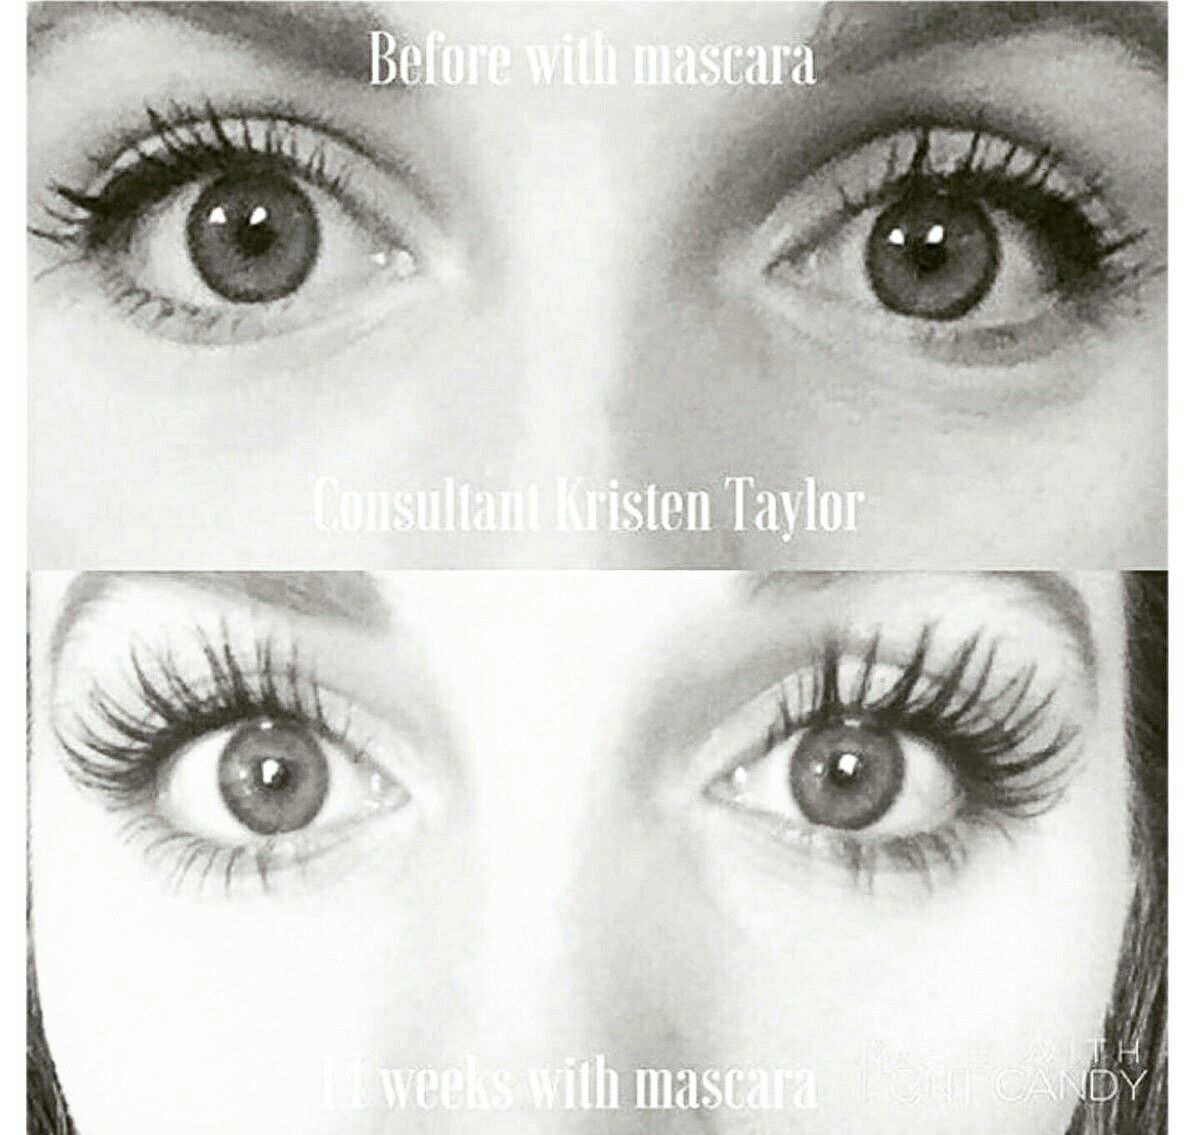 ef39af6a0eb 4/5/18 Does Rodan and Fields Lash Boost really work? ^^^^ See for yourself. Lash  Boost is not a mascara...it's a serum loaded full of Biotin, ...